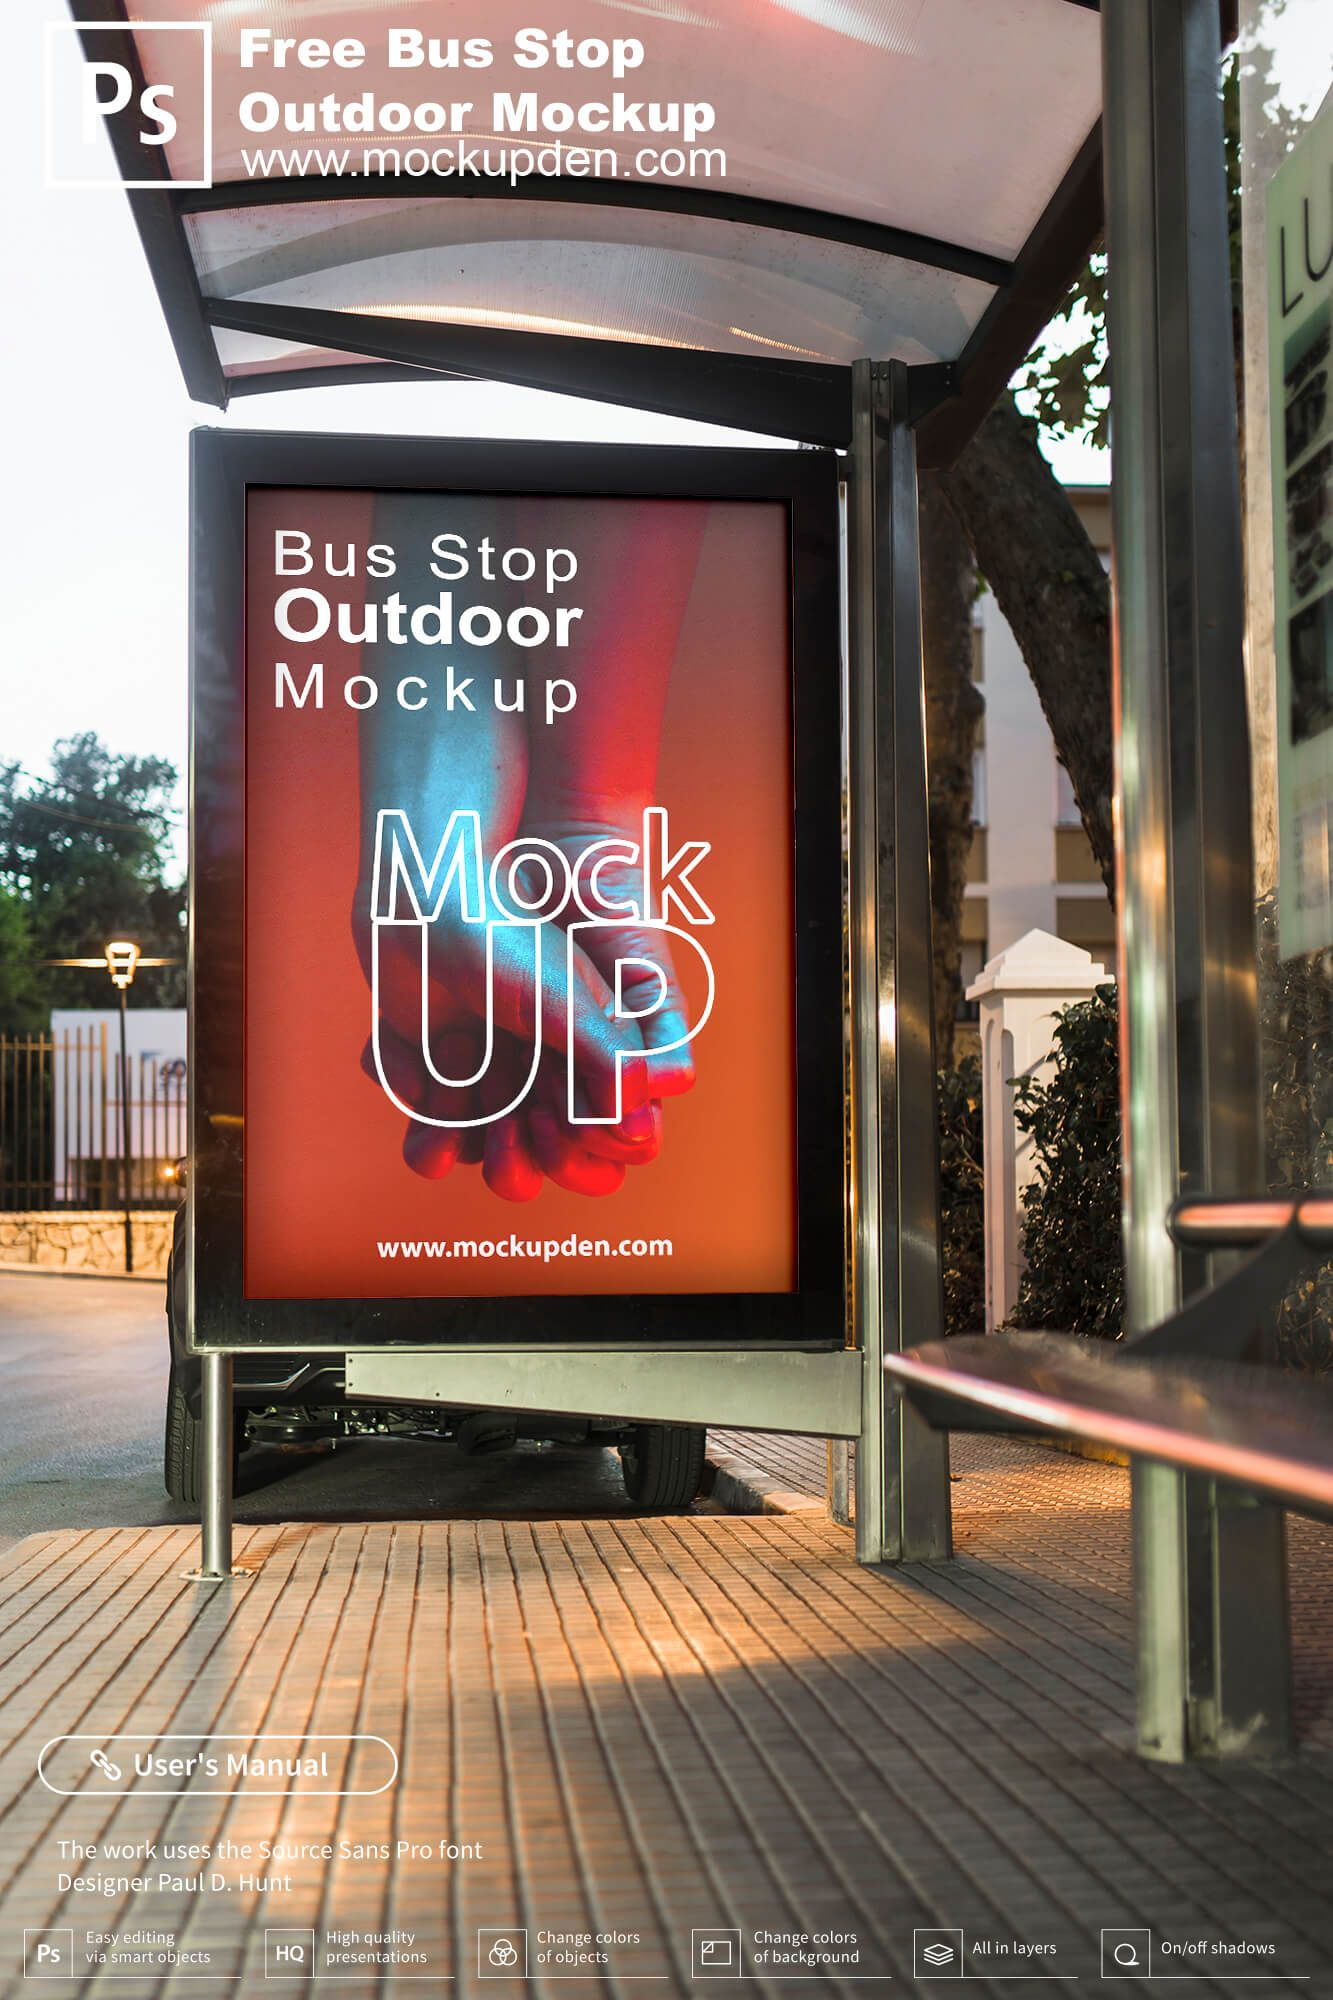 Free Bus Stop Outdoor Mockup Psd Template Bus Stop Poster Mockup Free Mockup Free Psd